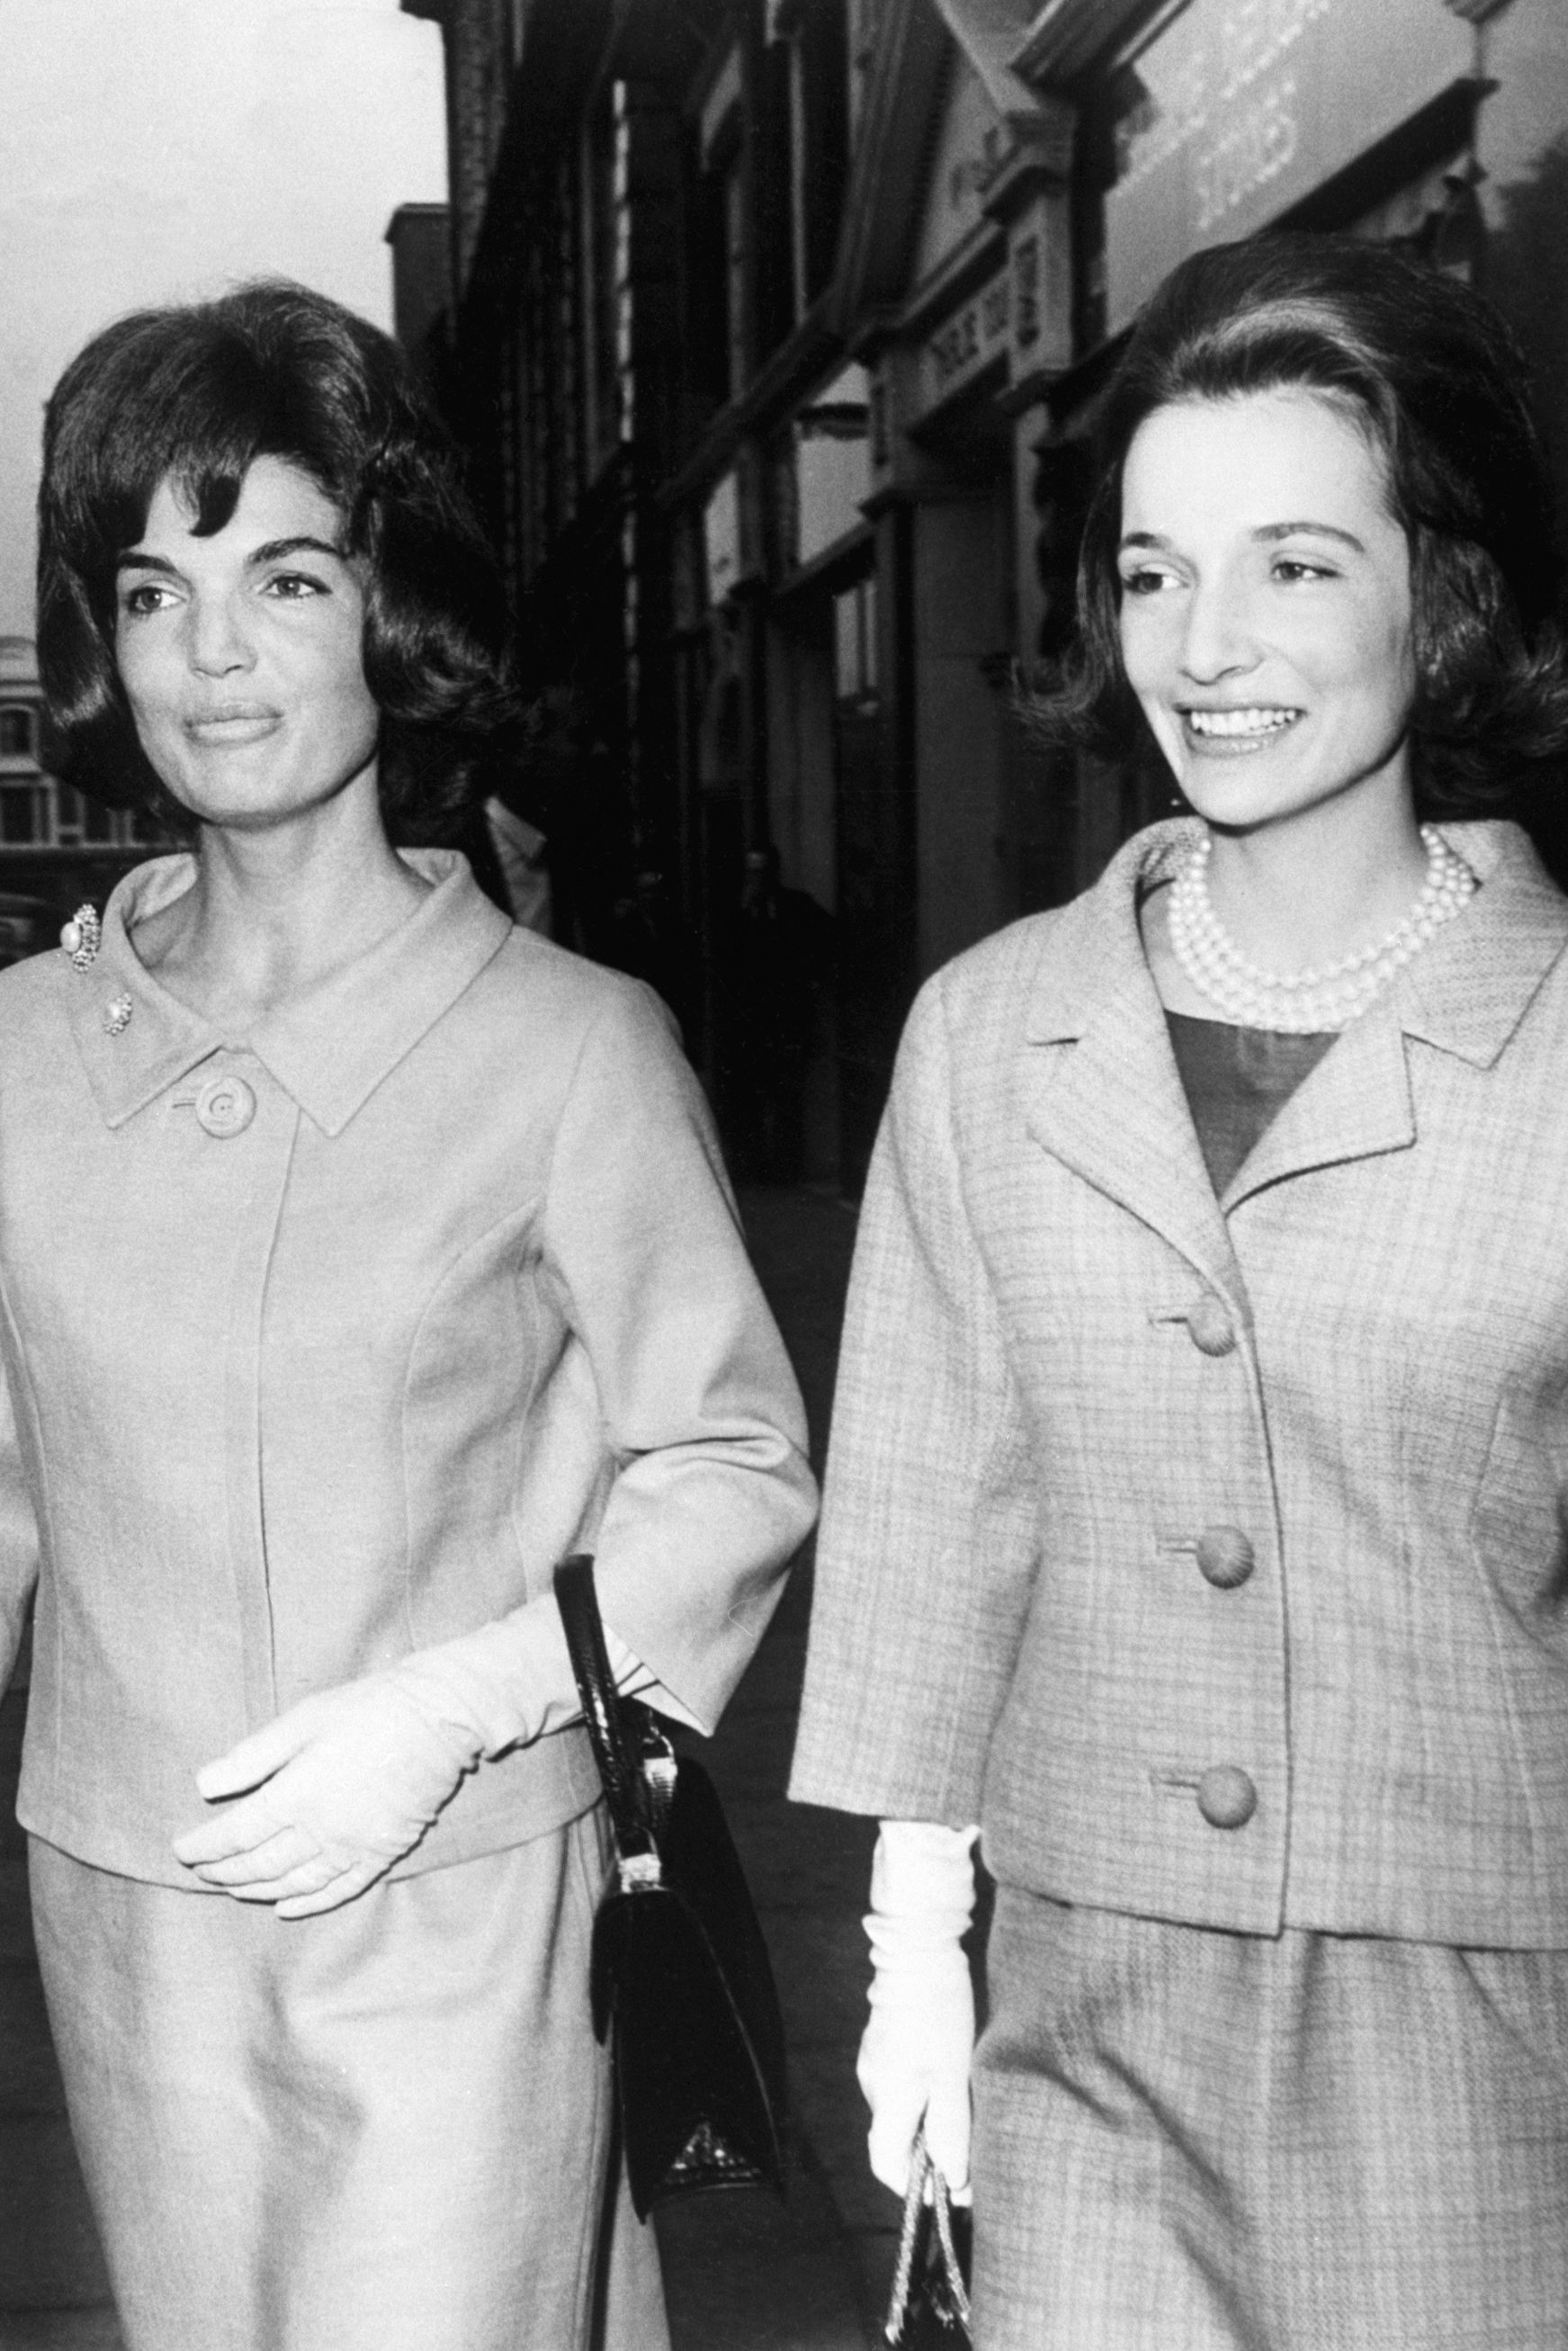 The Bouvier Sisters: 12 Things You May Not Know About Jackie Kennedy and Lee Radziwill